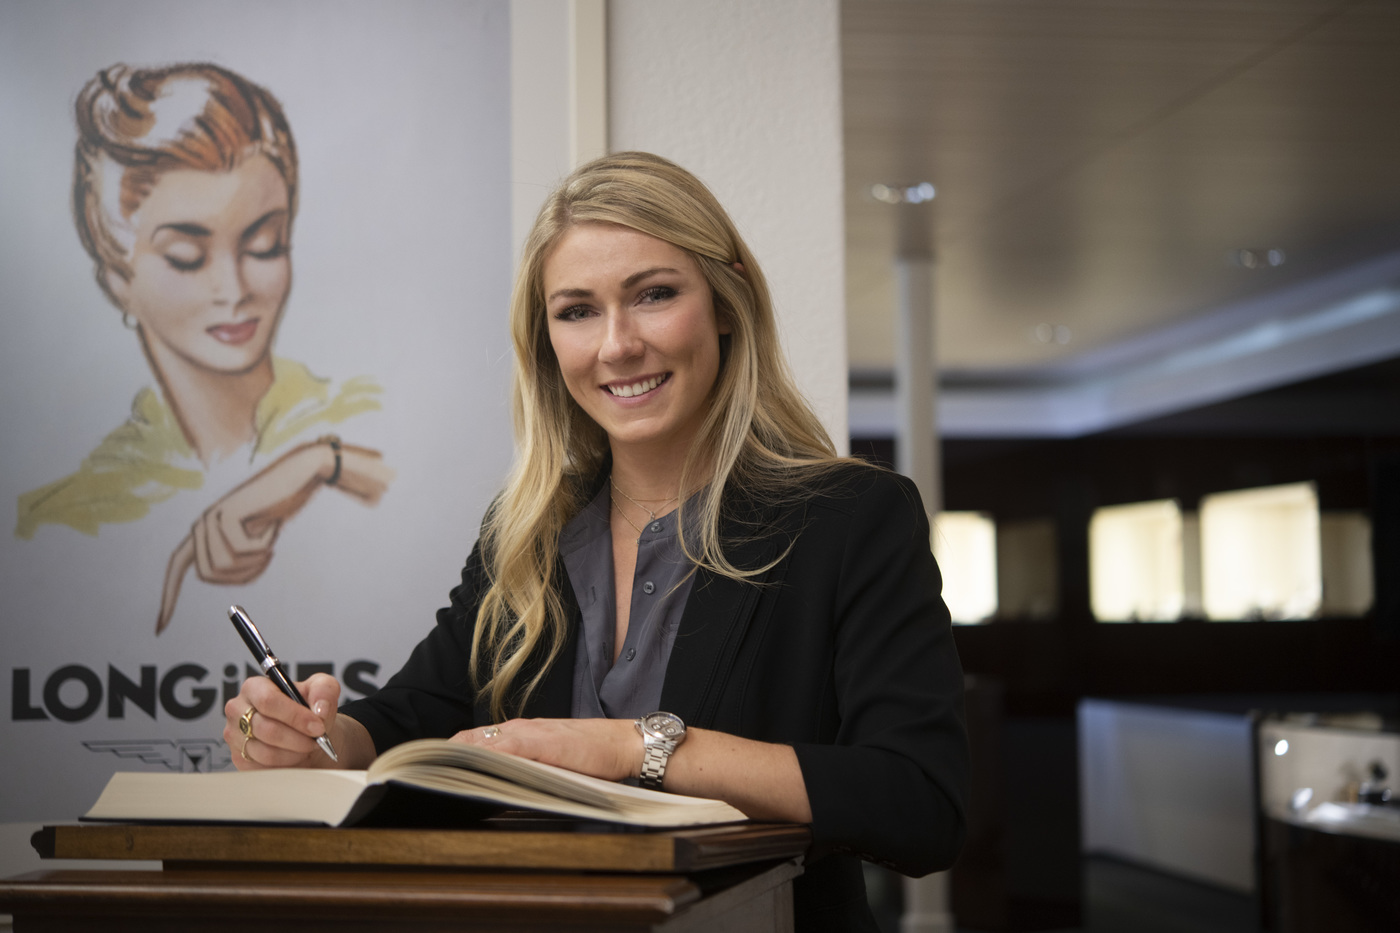 Longines Corporate Event: Longines receives the visit of ski champion and Ambassador of Elegance Mikaela Shiffrin at its headquarters in Saint-Imier 3